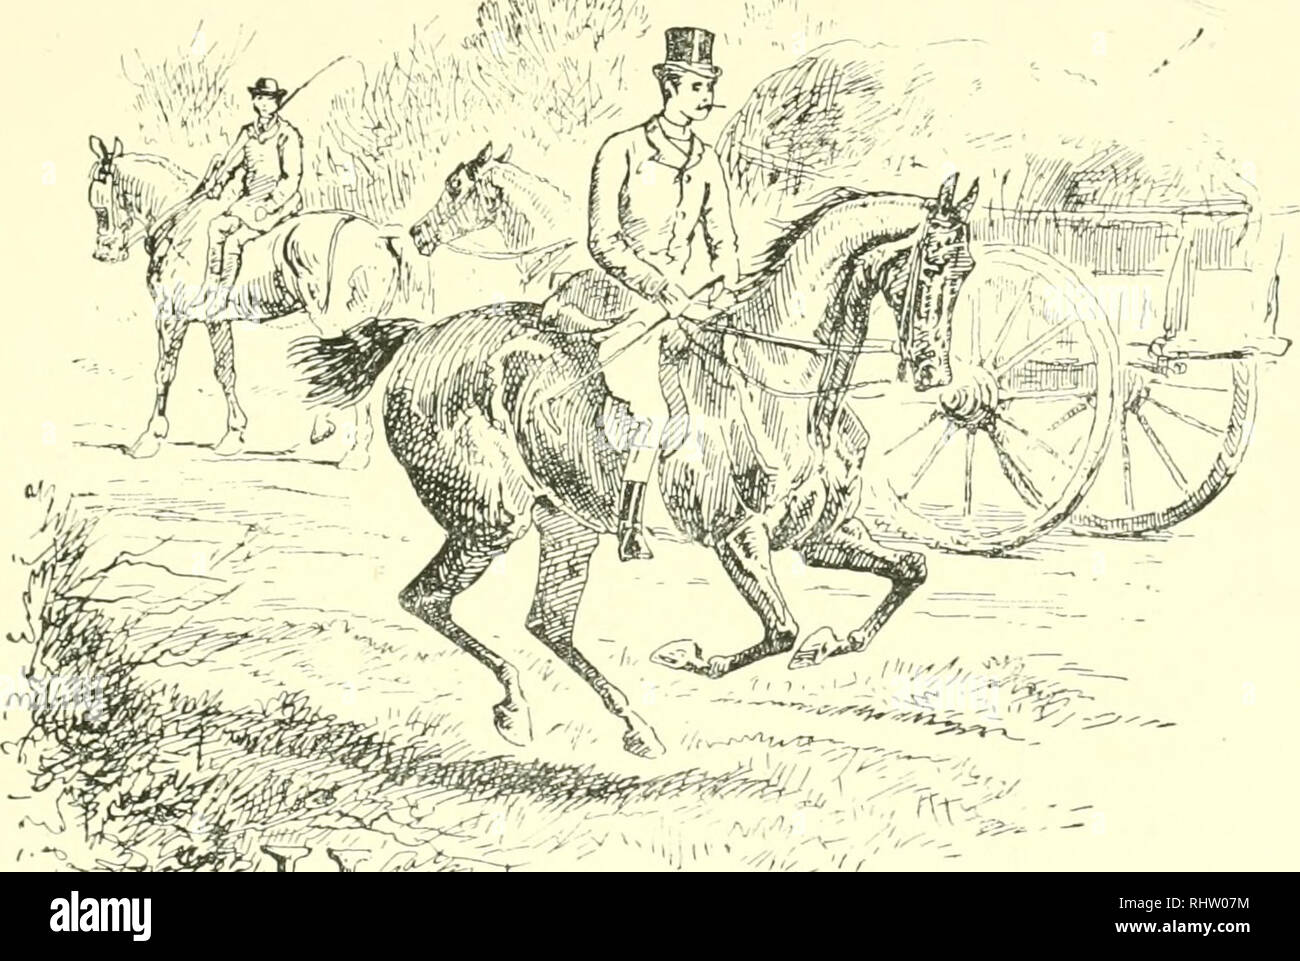 ". The best season on record : selected and republished from ""The field"". Horses; Fox hunting. CHAPTER XV. E. G. '!^^jr. a man but to write a single sample, entitle it "" A Day with tlie Quorn,"" and set to work upon it as if the army of hunting correspondents and descriptors had never been called into being to wear a subject to its barest threads —he might do worse than take Friday, January 18th, for his subject. He would begin of course by drawing a lively picture of the gay meet before the old feudal Hall, descant upon the bevy of brightness and beauty on. Please note that  - Stock Image"